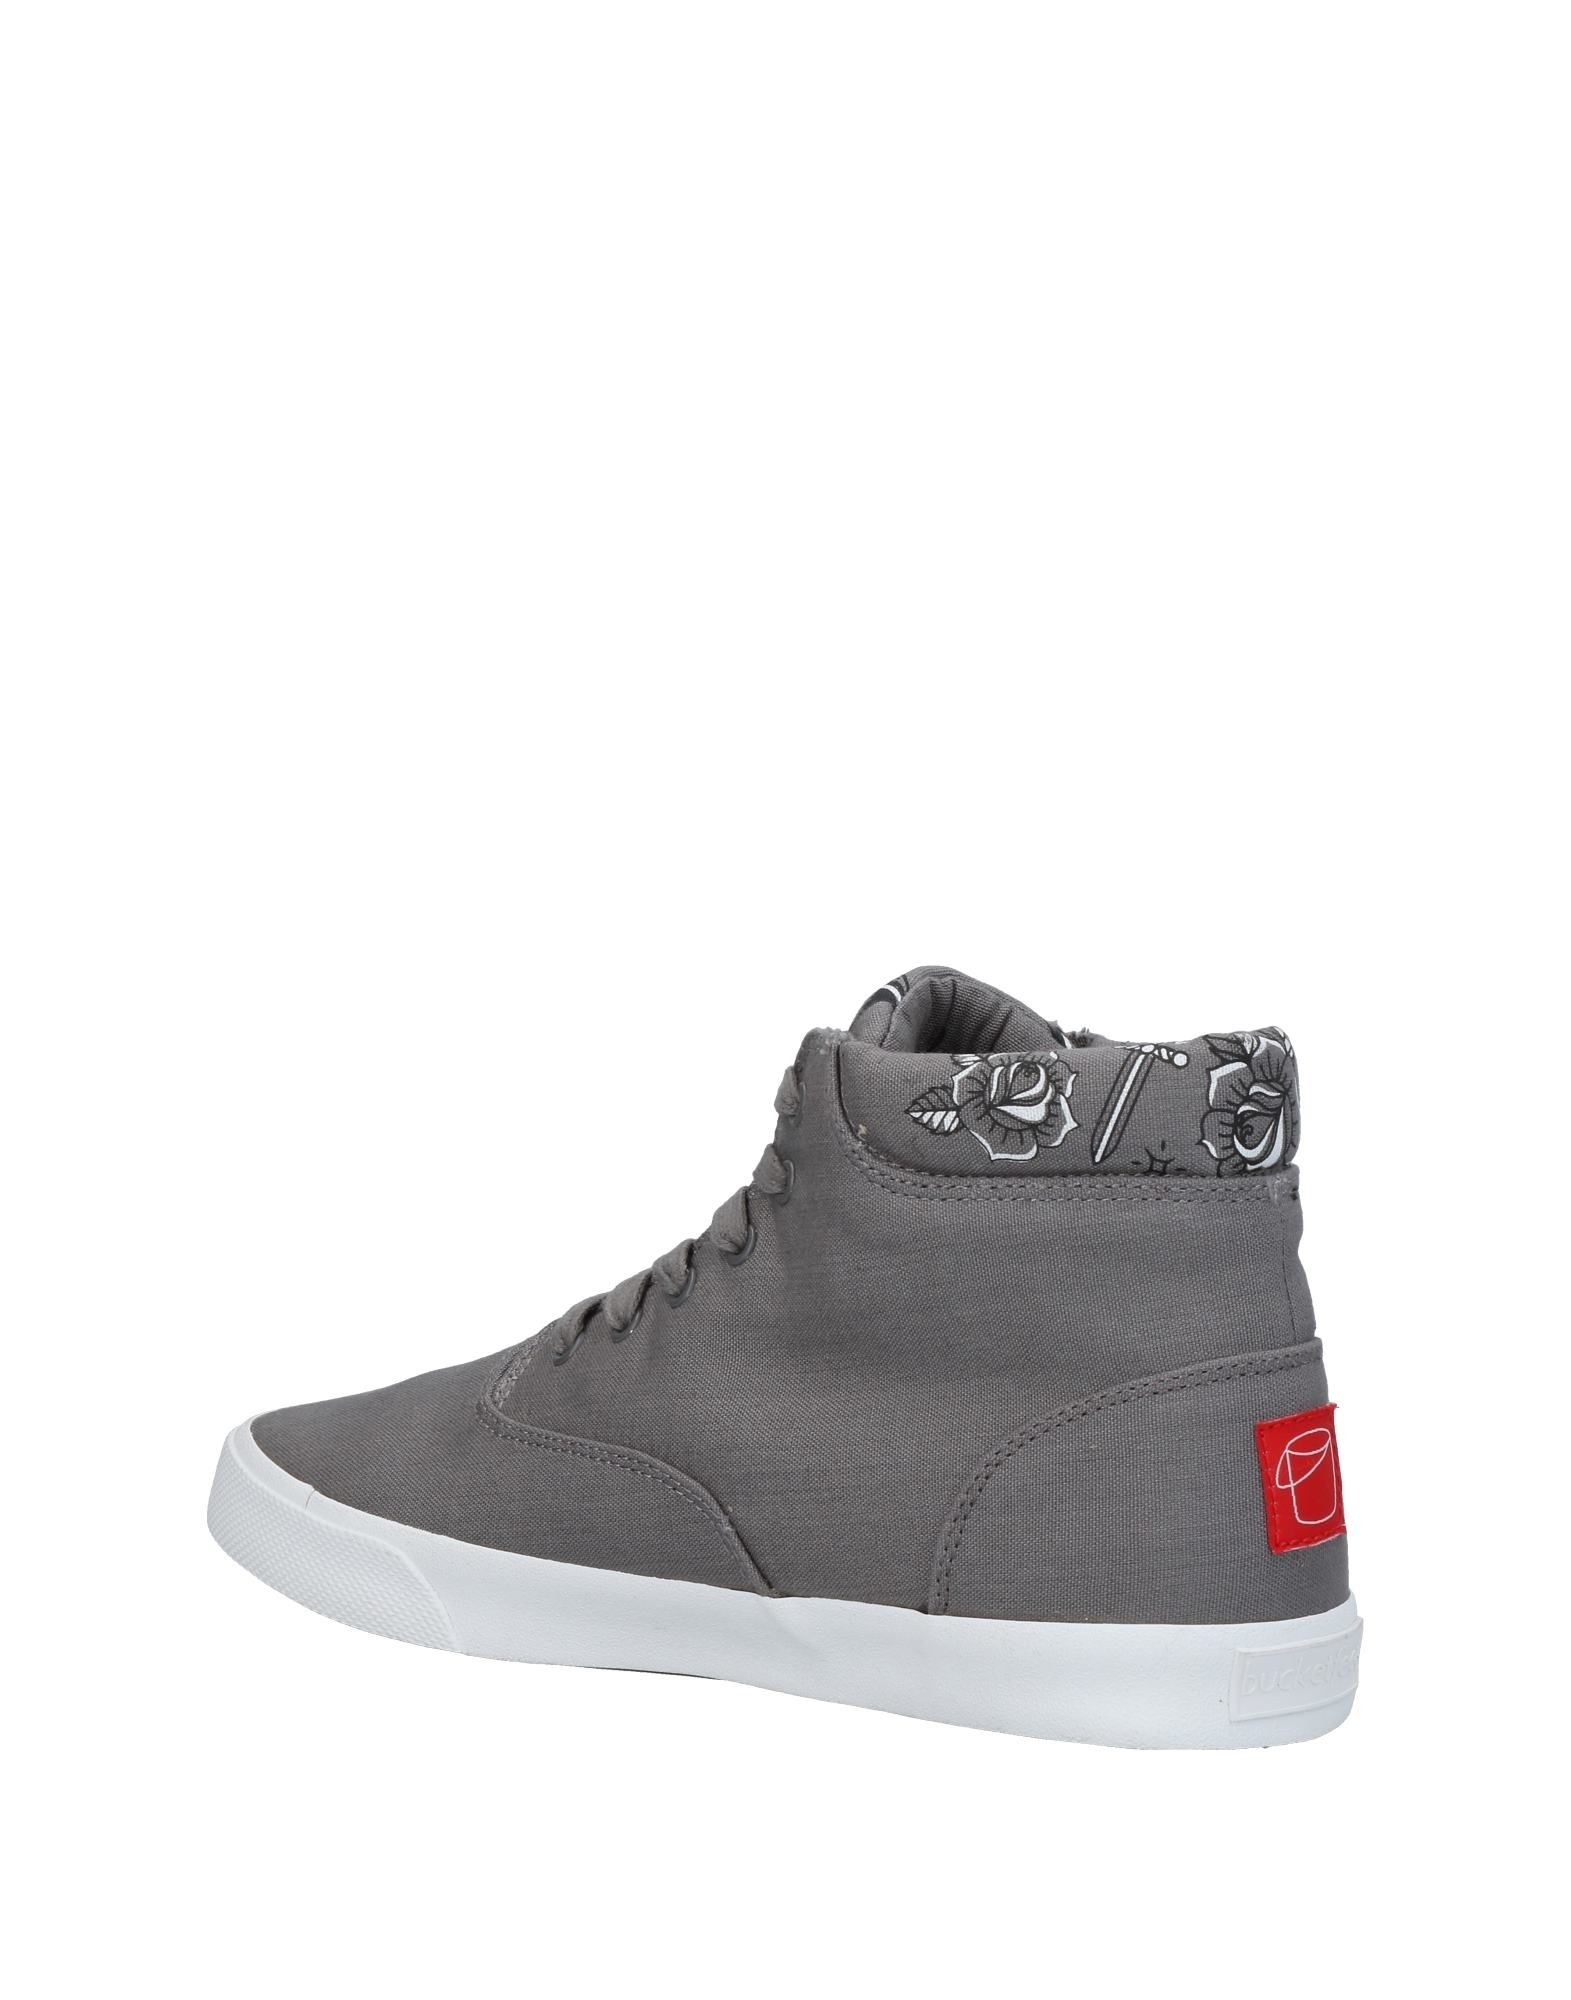 Sneakers Bucketfeet Homme - Sneakers Bucketfeet sur